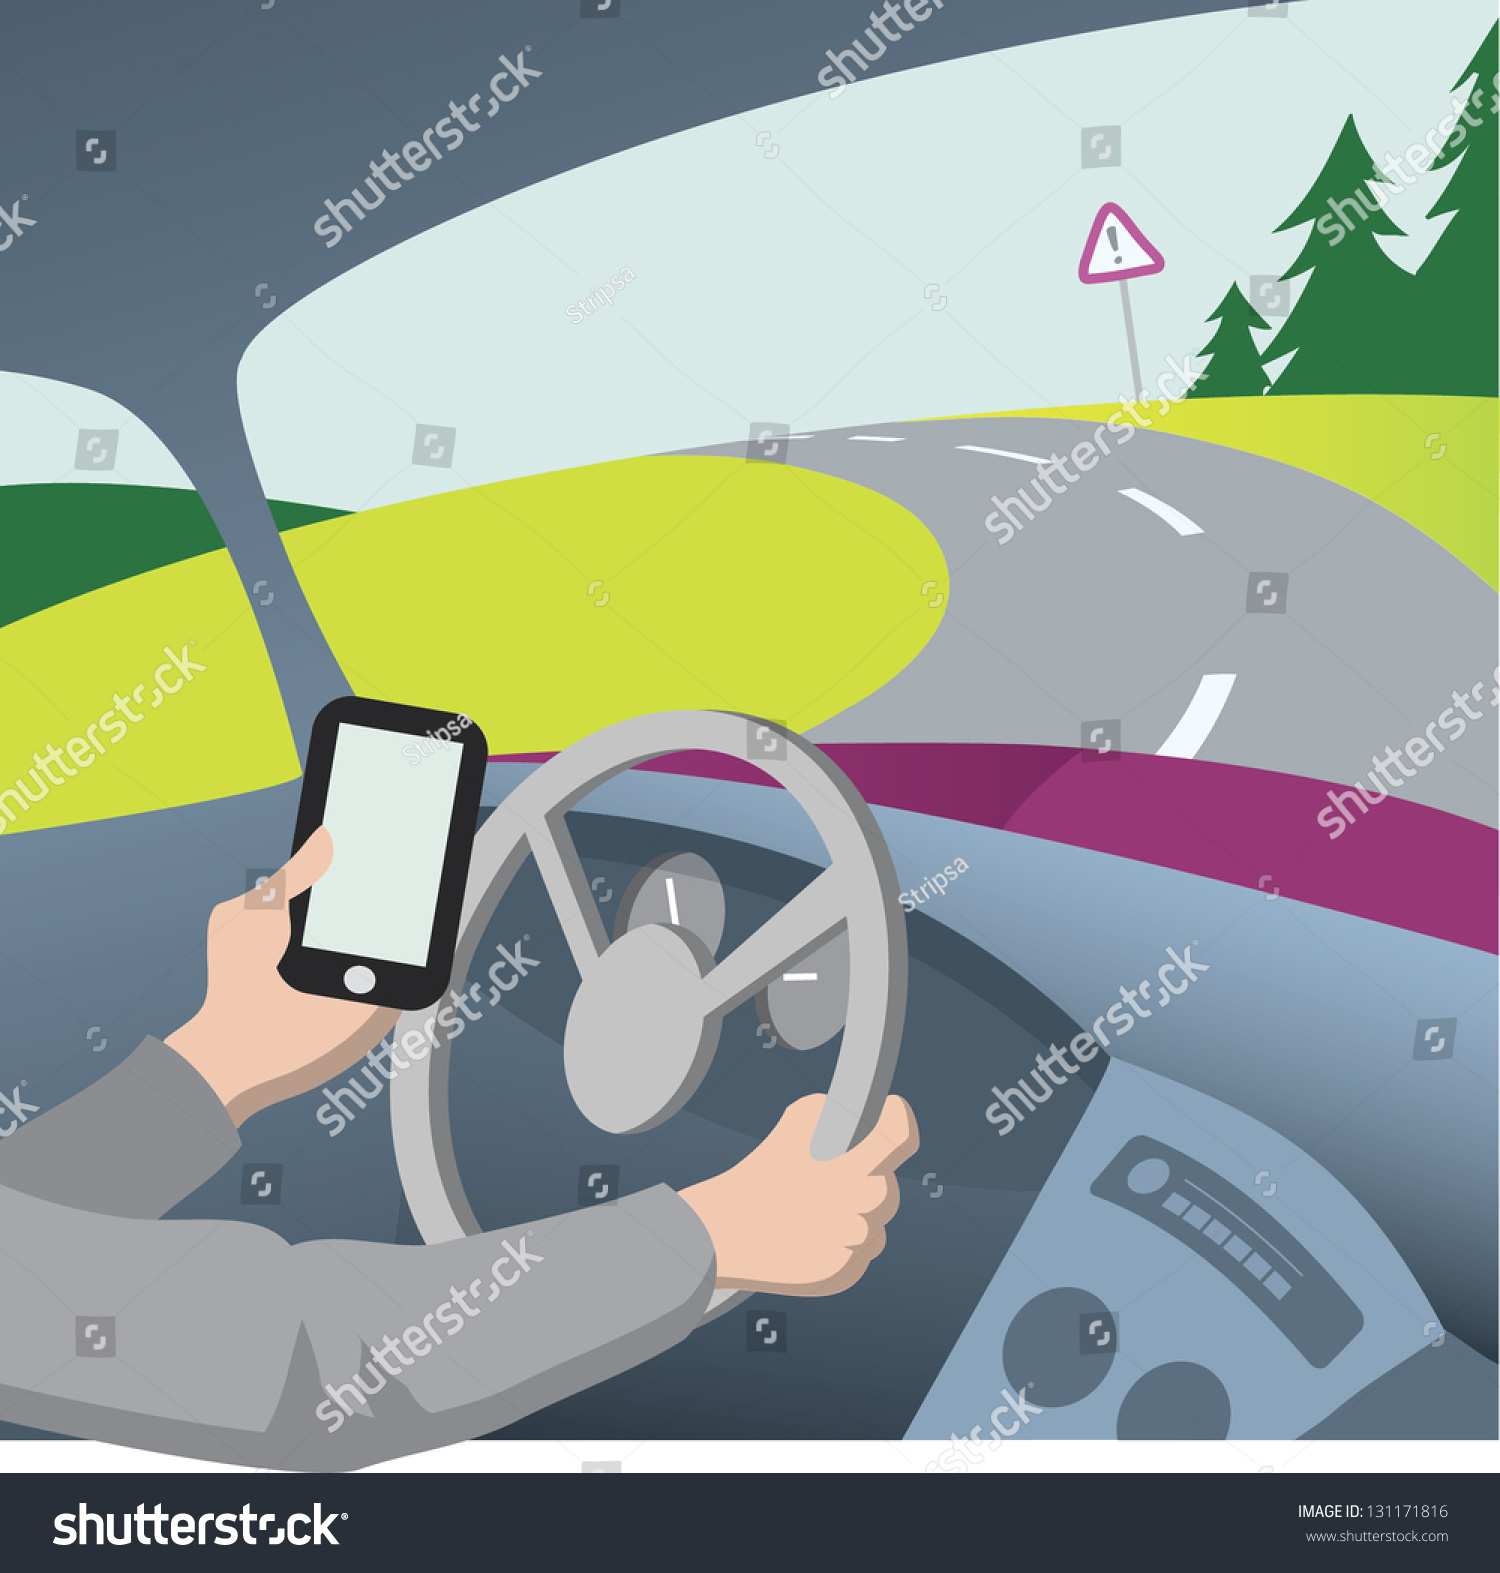 Free essay texting while driving